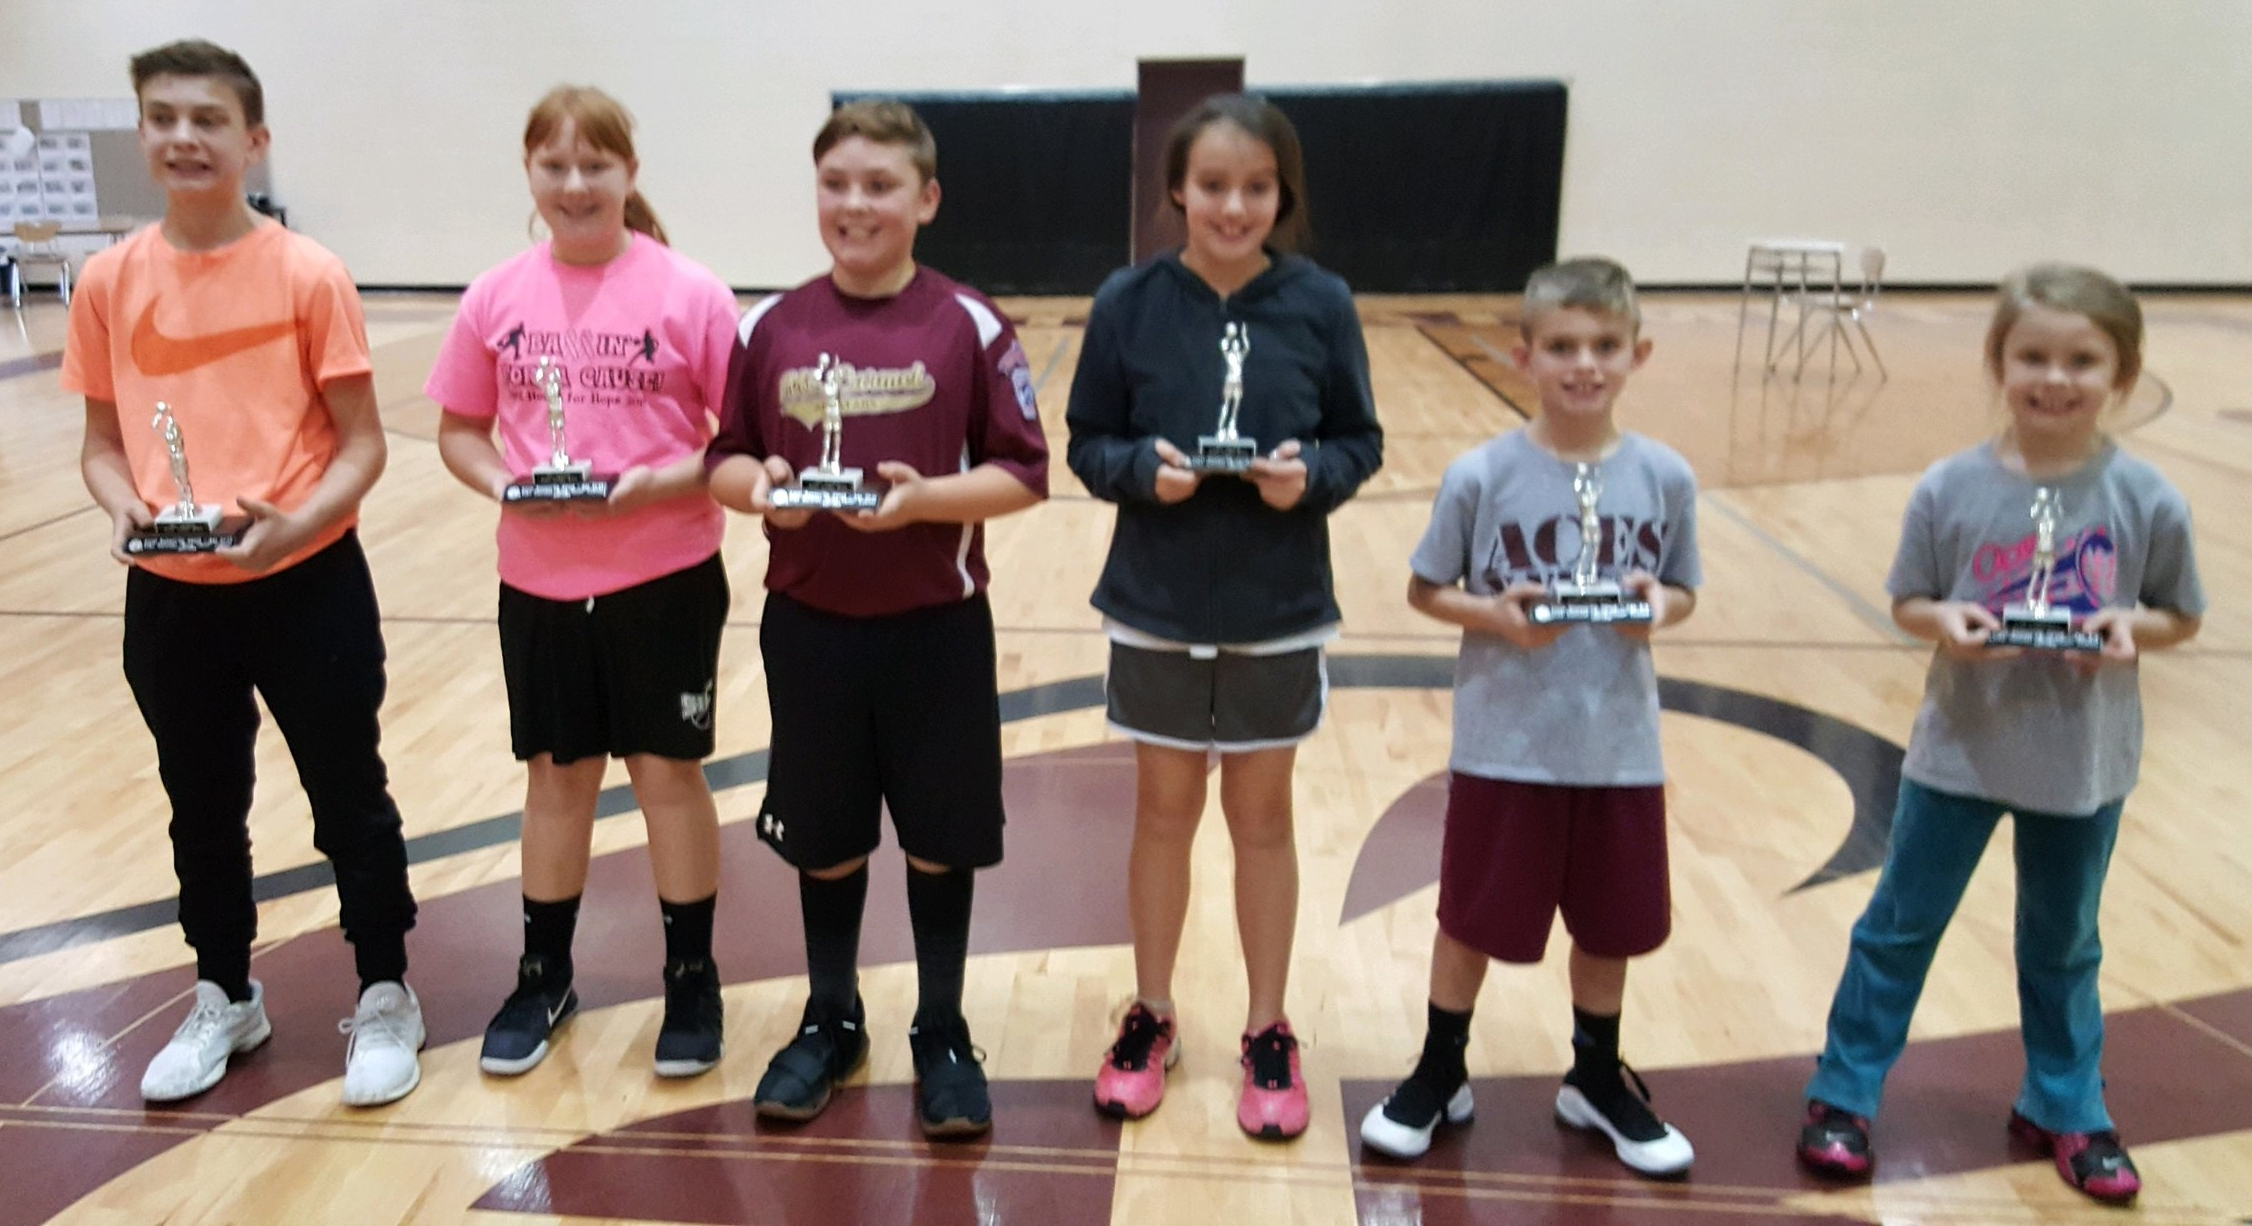 Second Place Winners Picture (L-R)   Gage Kennard, Savanah Zimmerman, Levi Banks, Evie Knapp, Shain Meador, and Sophie Banks